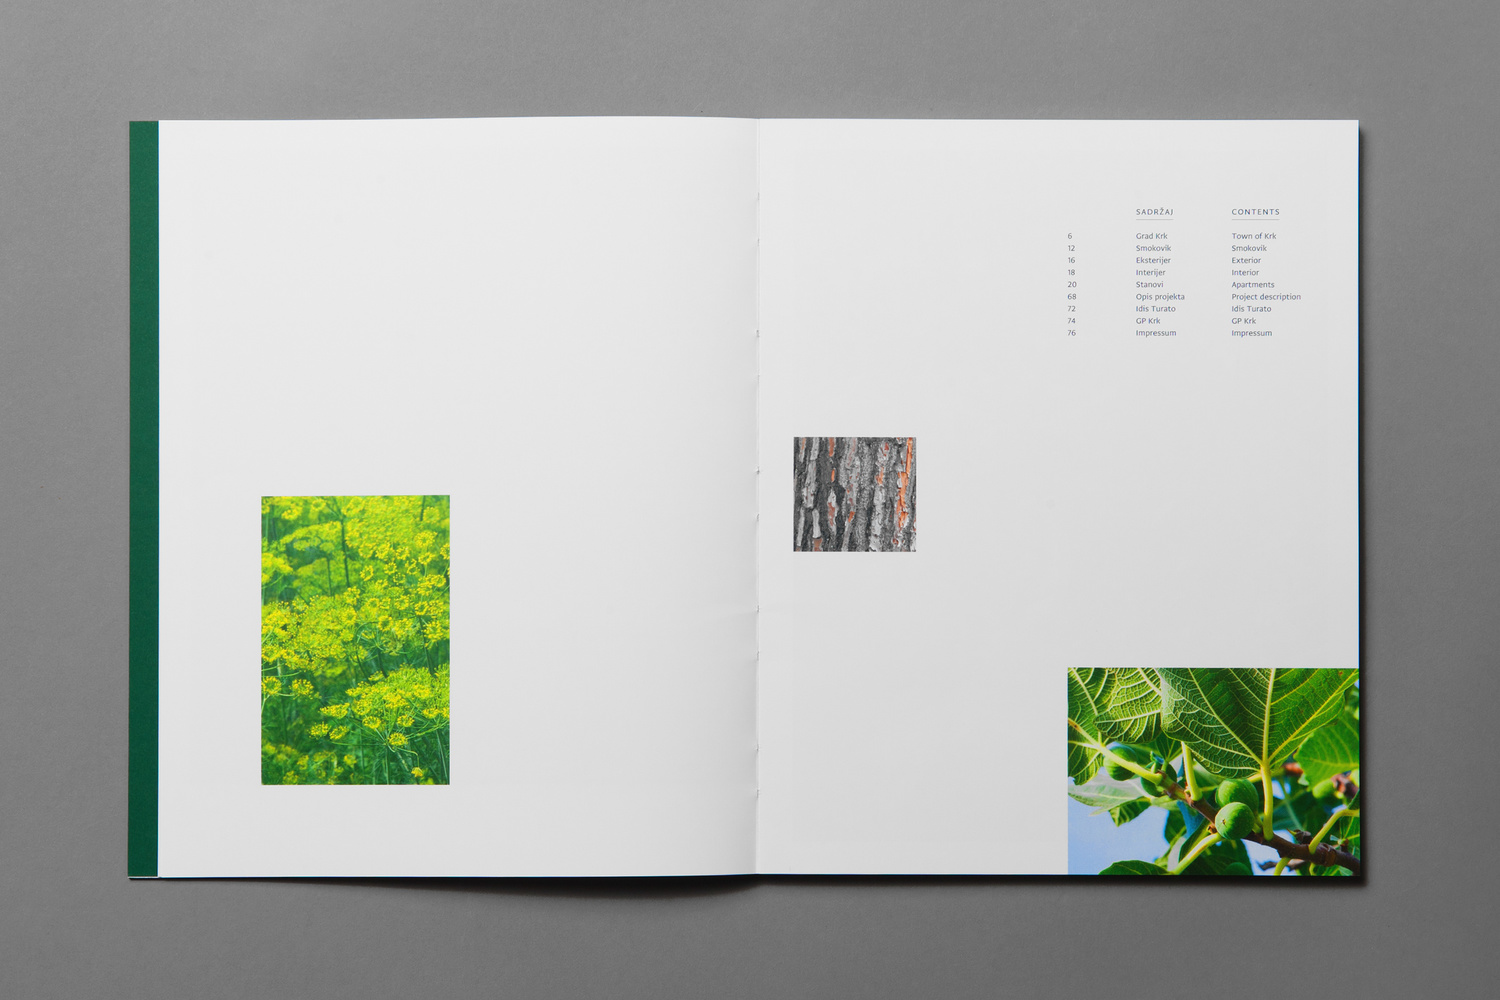 Branding and brochure spread by Studio8585 for Croatian property development Smokovik